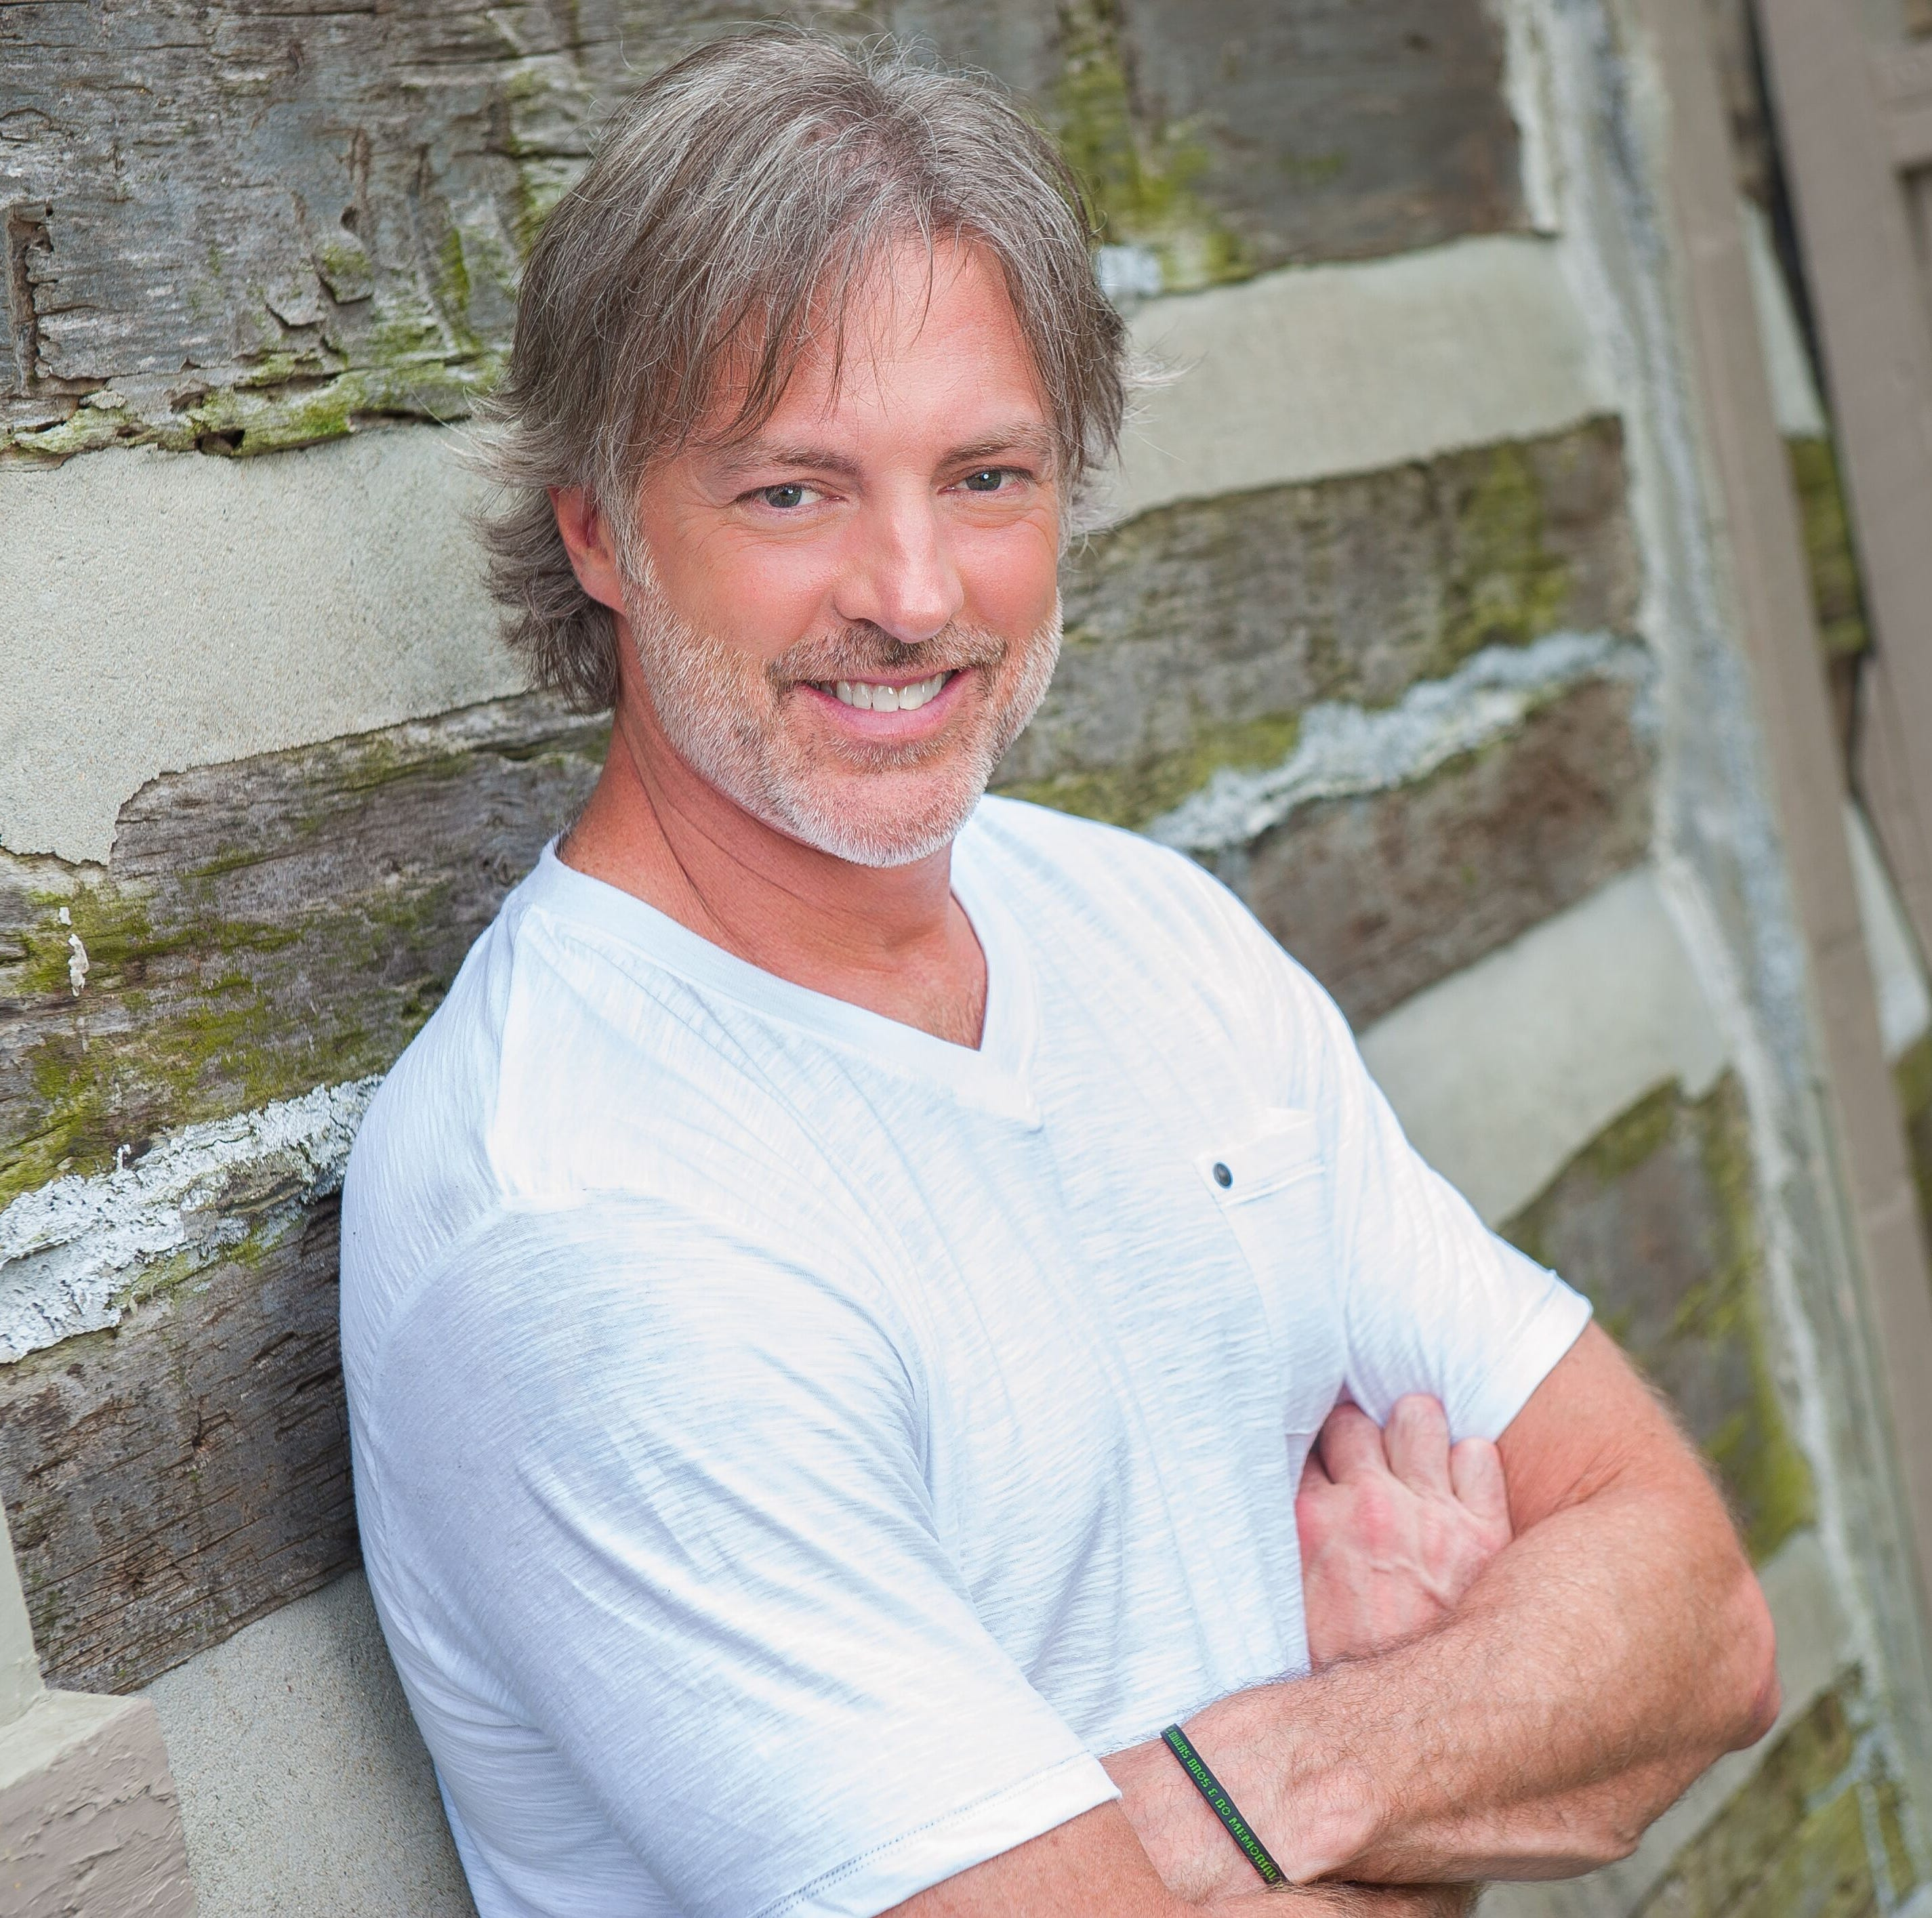 Darryl Worley: The blessing and curse of 'Have You Forgotten?'